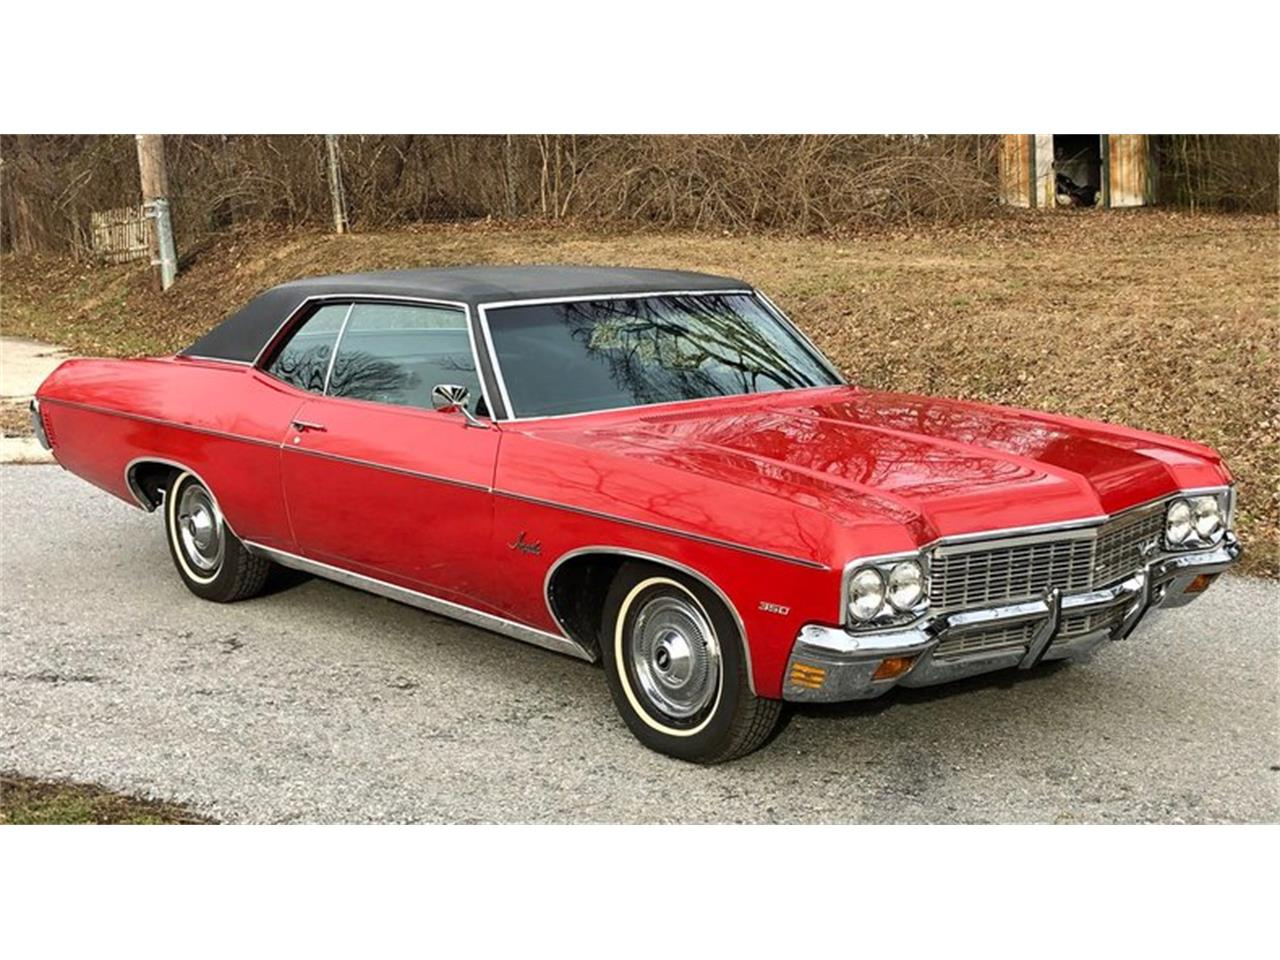 for sale 1970 chevrolet impala in west chester, pennsylvania cars - west chester, pa at geebo